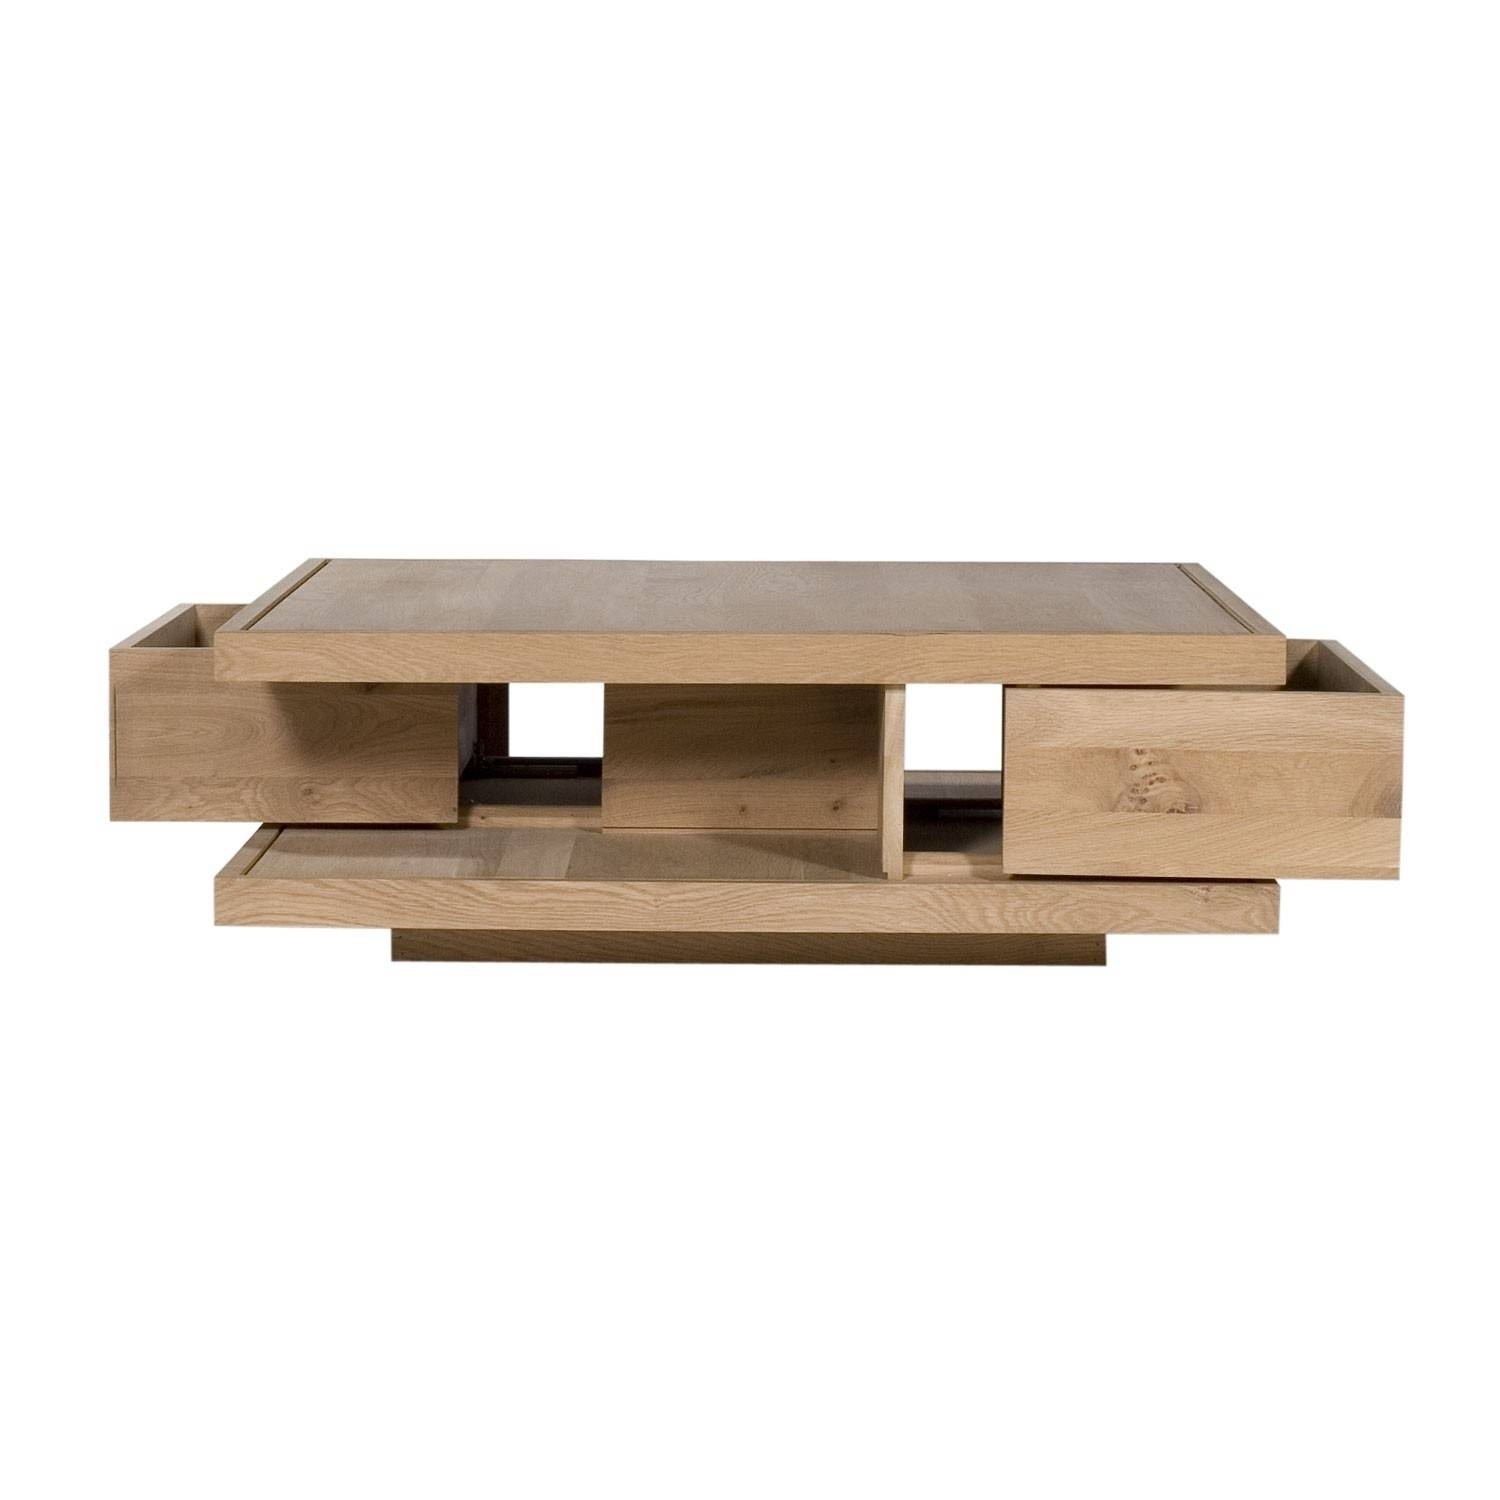 Oak Coffee Table Sets / Coffee Tables / Thippo throughout Oak Coffee Table Sets (Image 18 of 30)